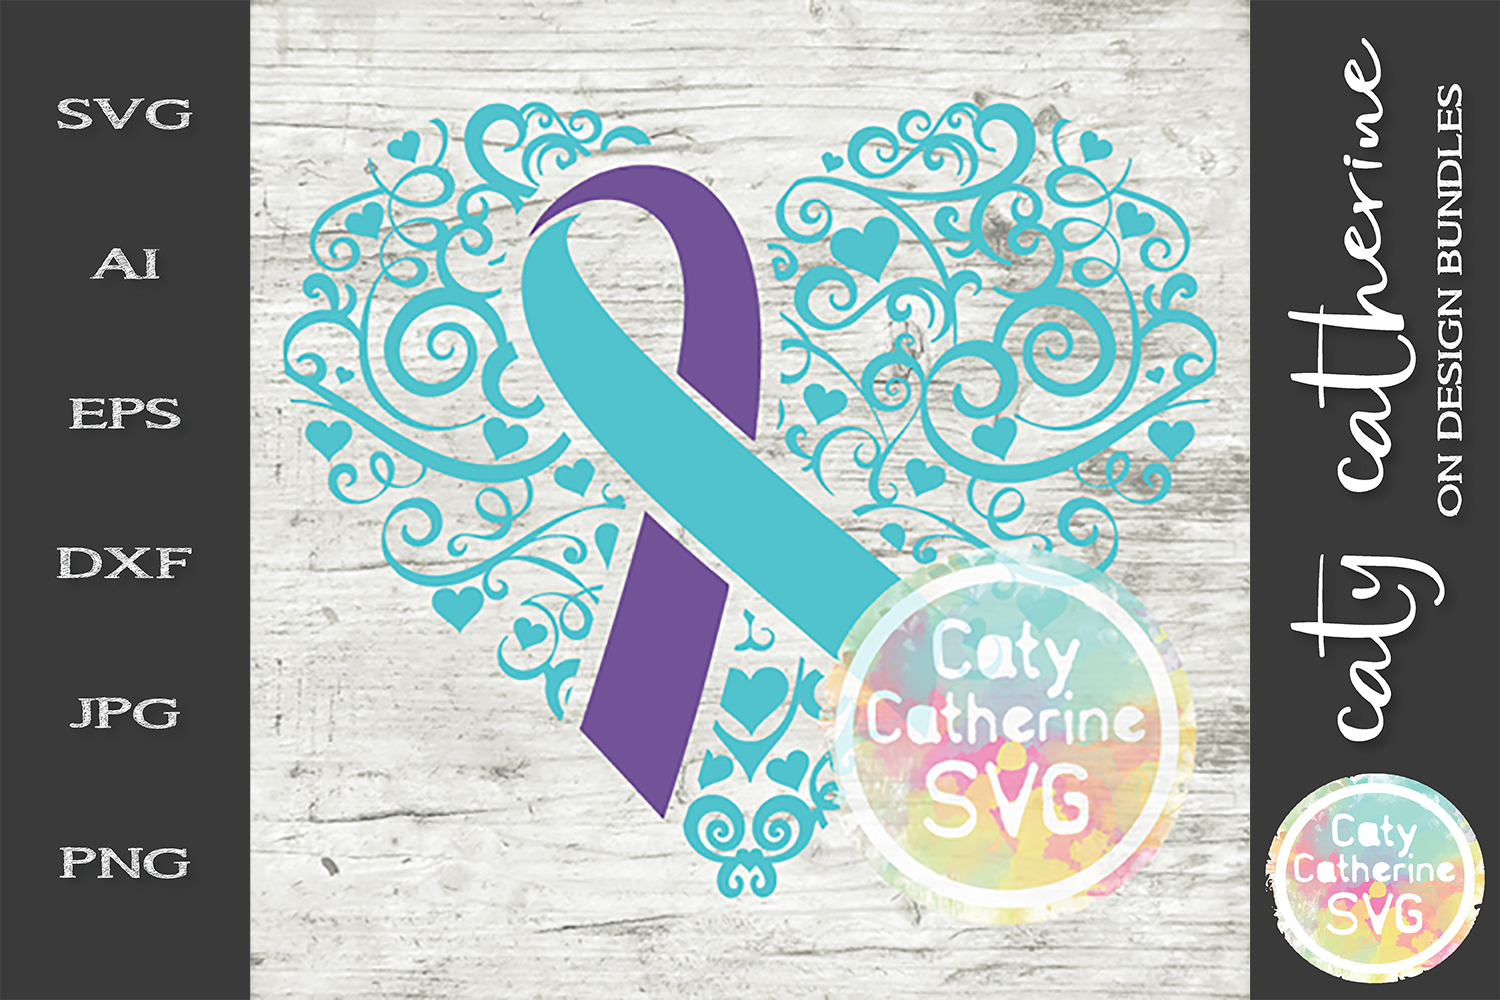 Suicide Ribbon Love Heart Awareness SVG Cut File example image 1